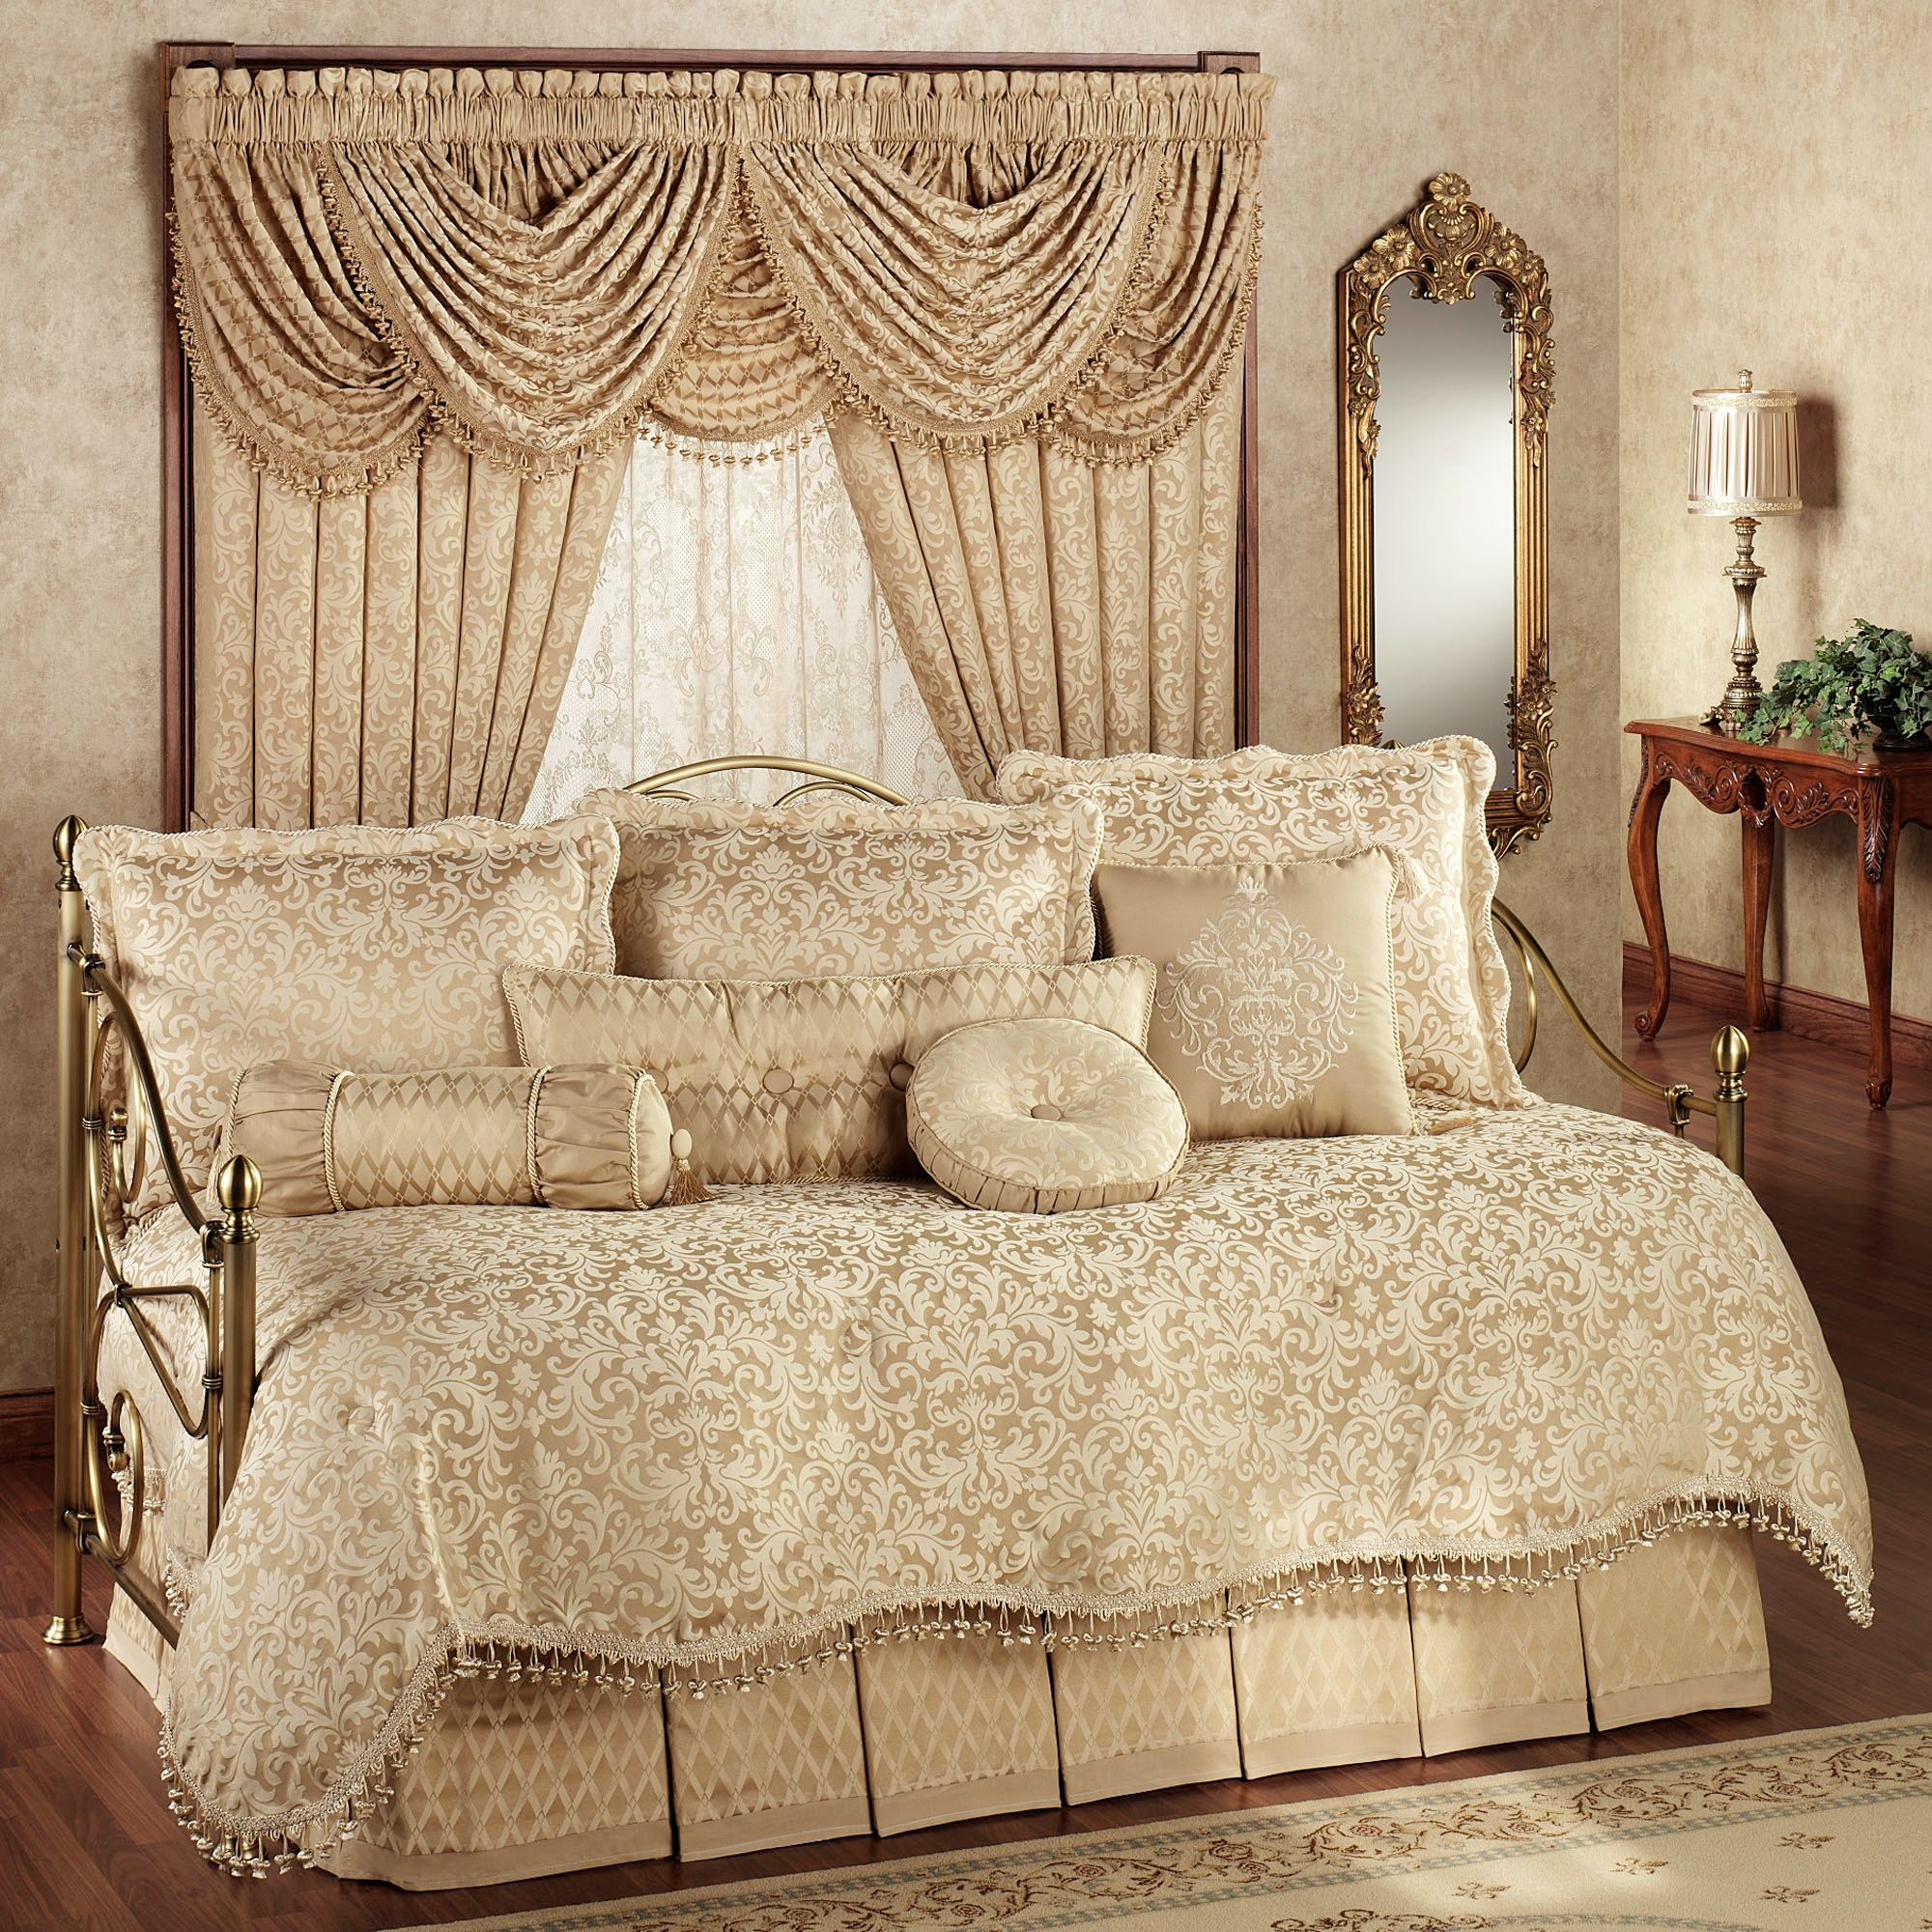 brown daybed bedding sets photo - 6